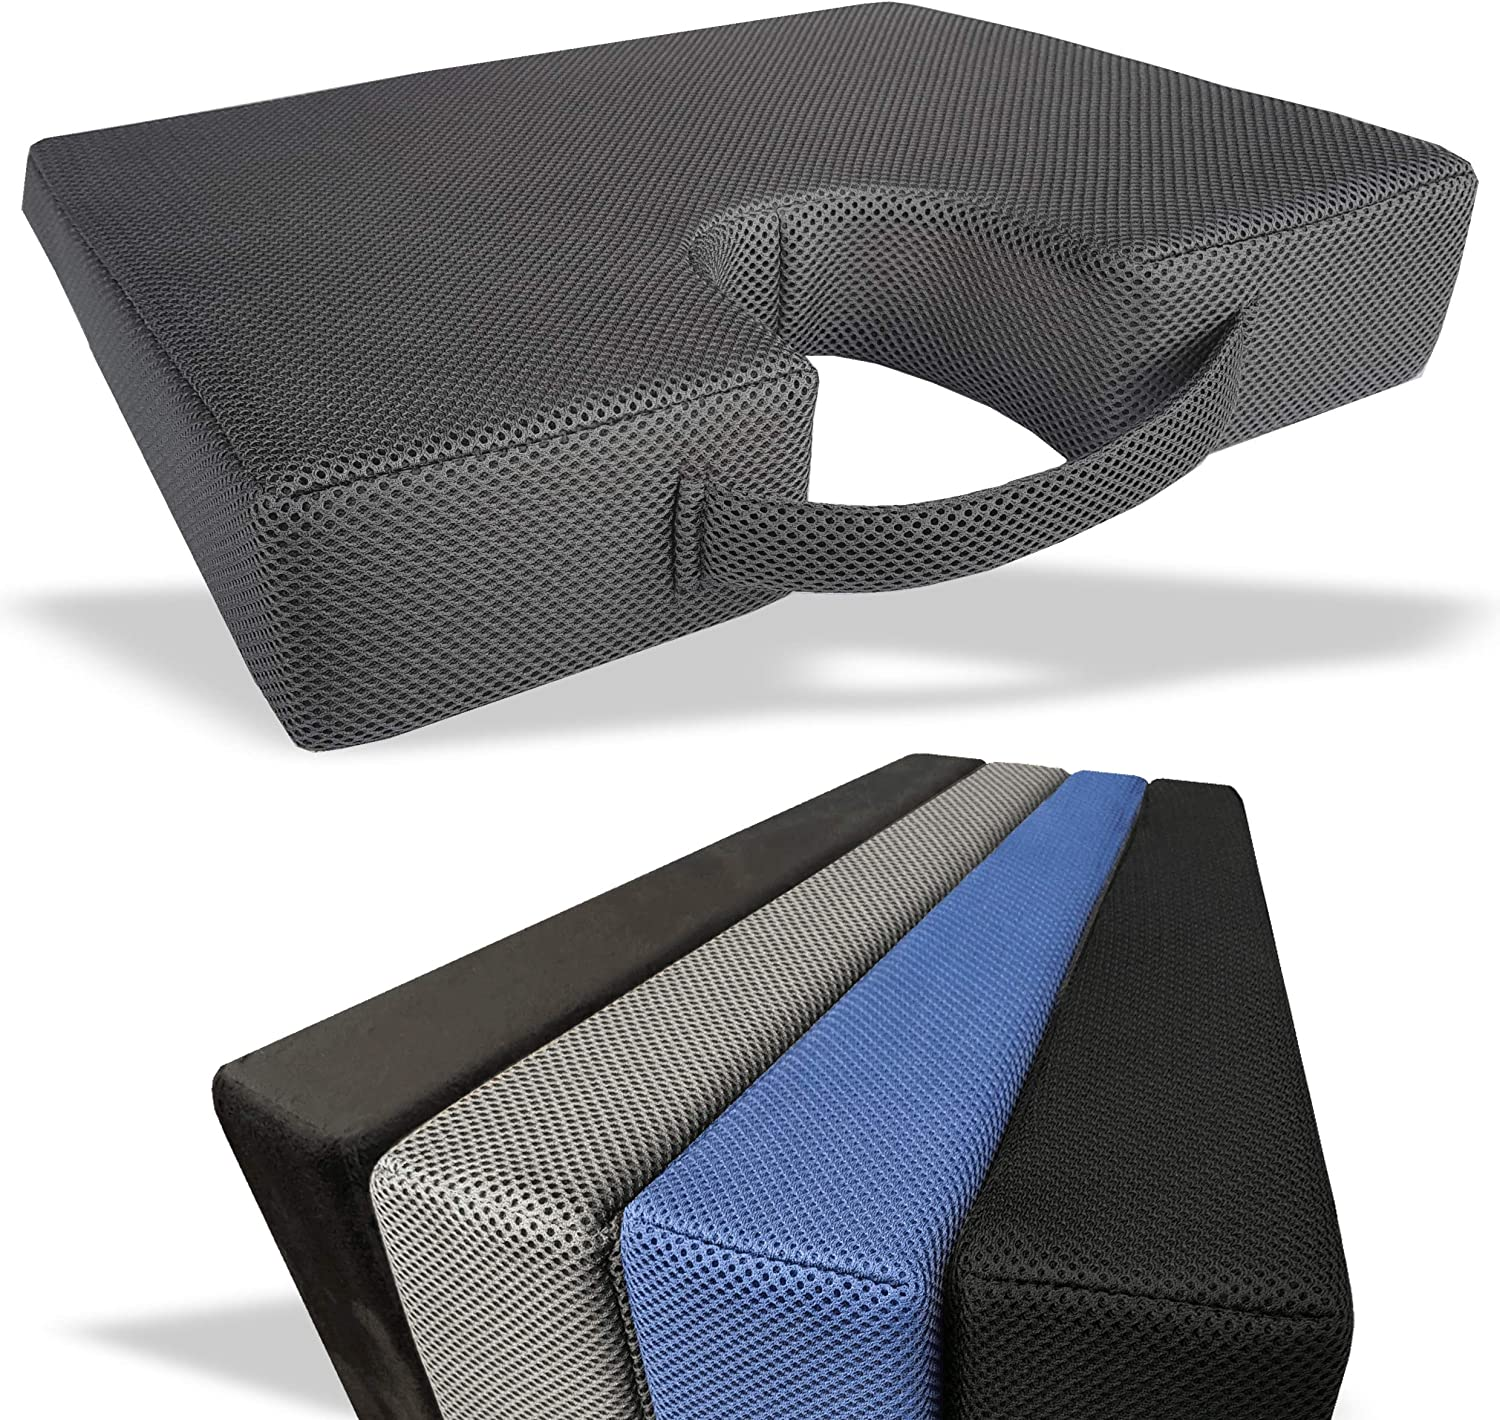 Medipaq Memory Foam Wedge Cushion with Genuine Cut-Out ! Super beauty product restock quality top! S for Back Coccyx